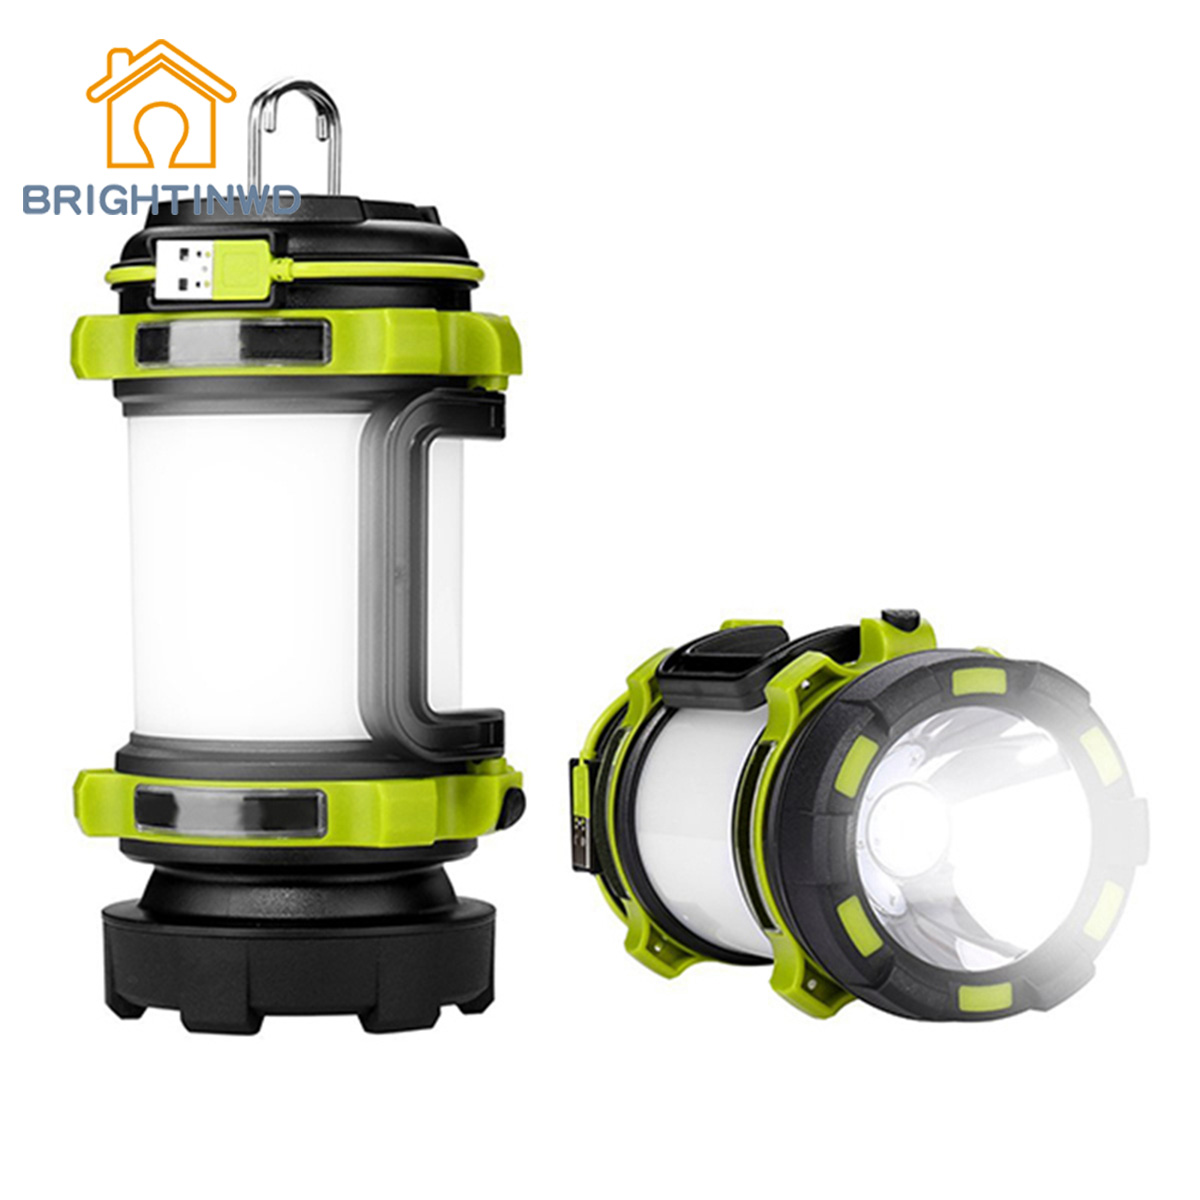 BRIGHTINWD LED Camping Lantern Spotlight Flashlight Waterproof Rechargeable 2600mAh Power Bank DC5V Hiking Emergency Tent